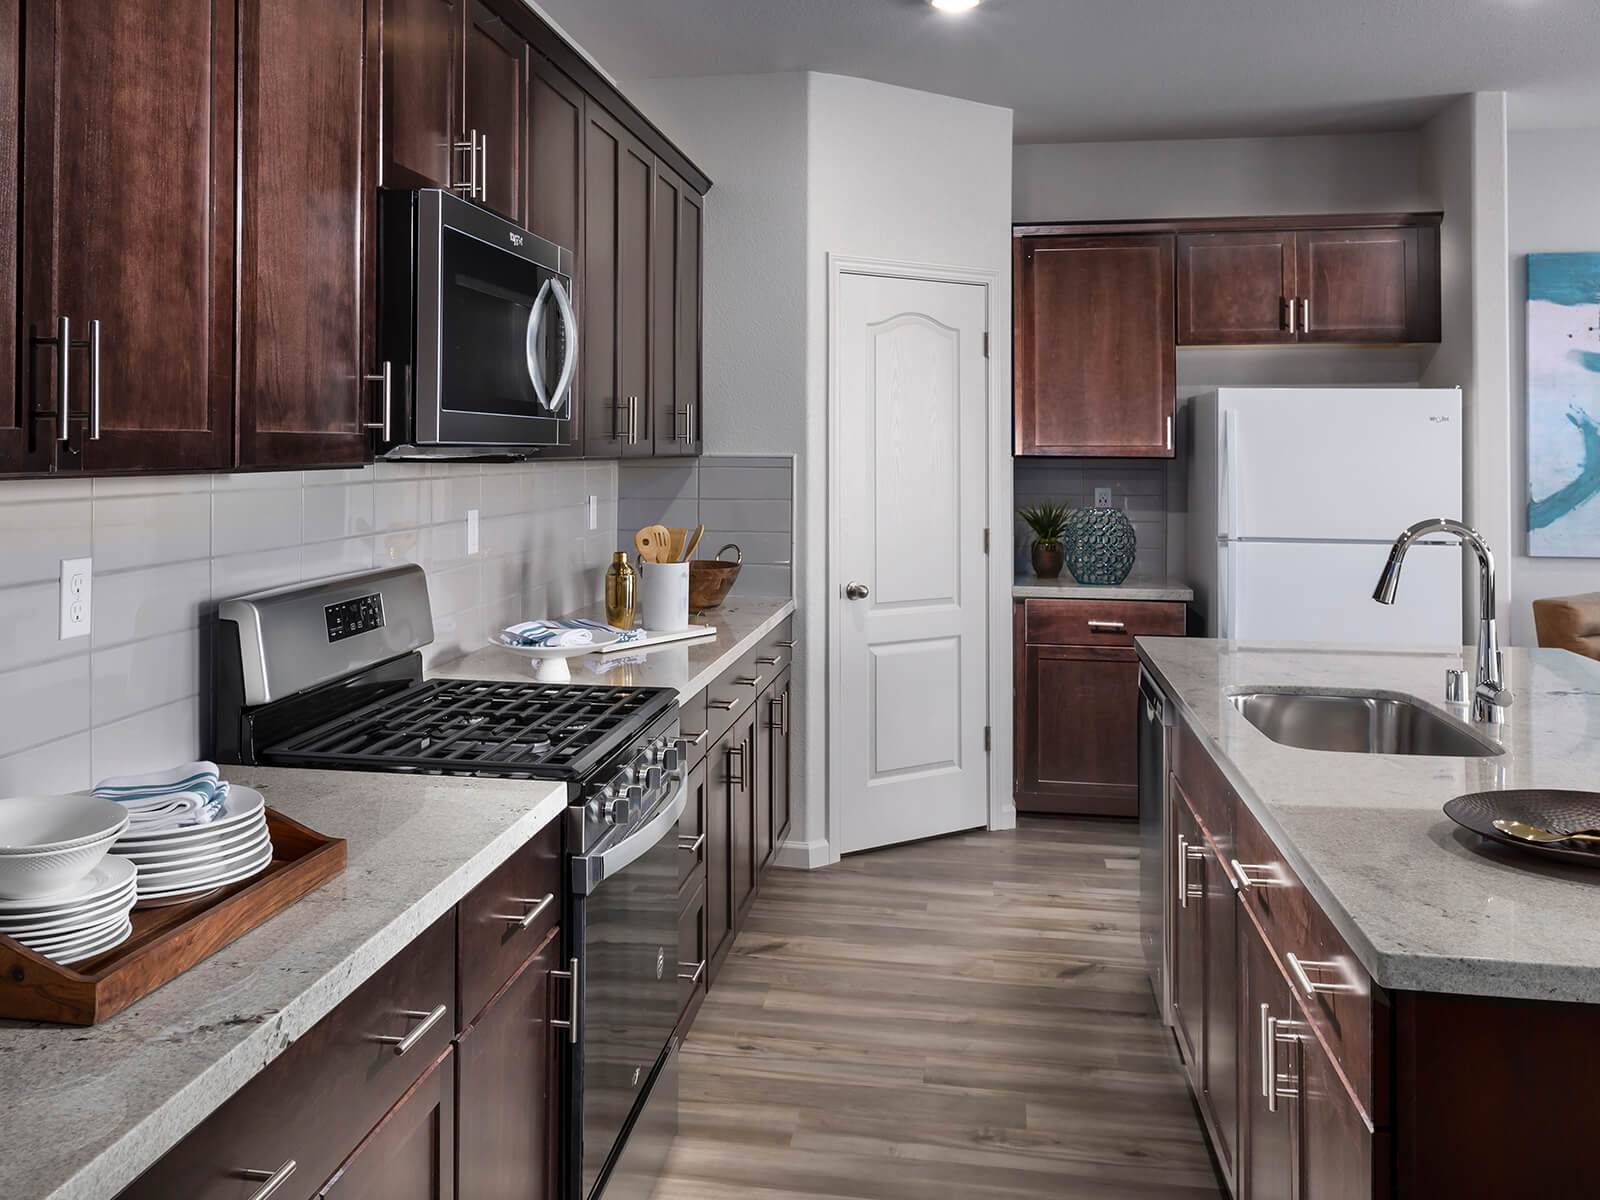 Kitchen featured in the Residence 3 By Meritage Homes in Stockton-Lodi, CA